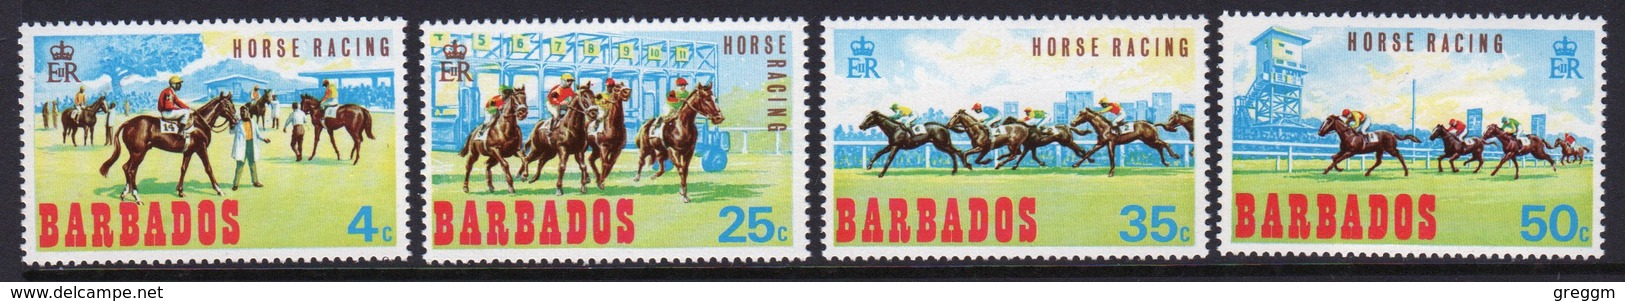 Barbados Set Of Stamps Issued To Celebrate Horse Racing. - Barbados (...-1966)